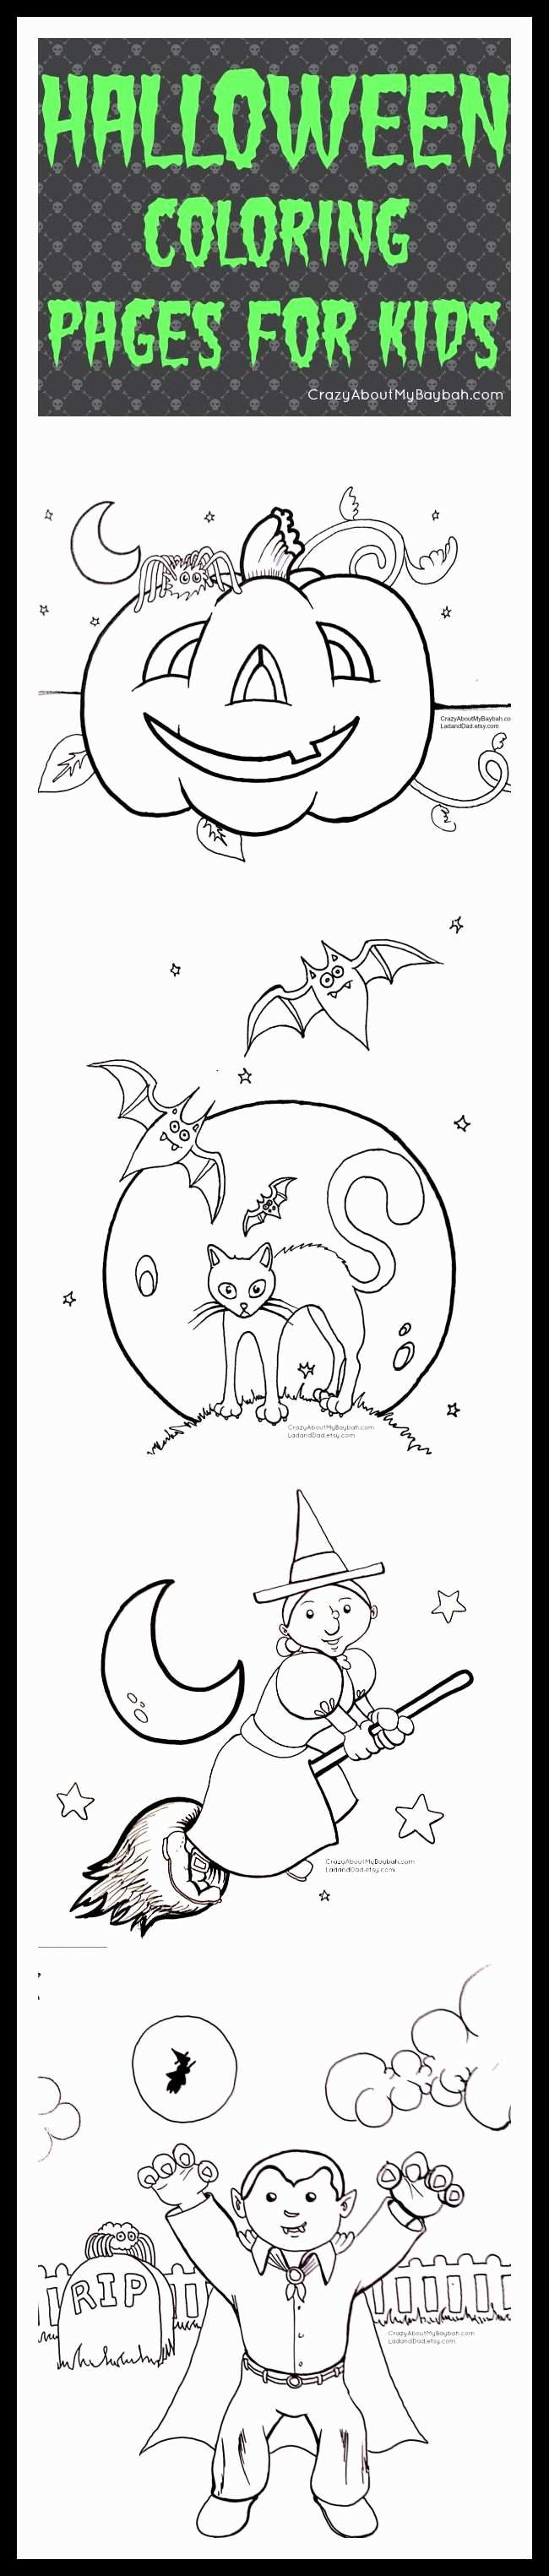 Minion Halloween Coloring Pages  Download 6j - Free Download